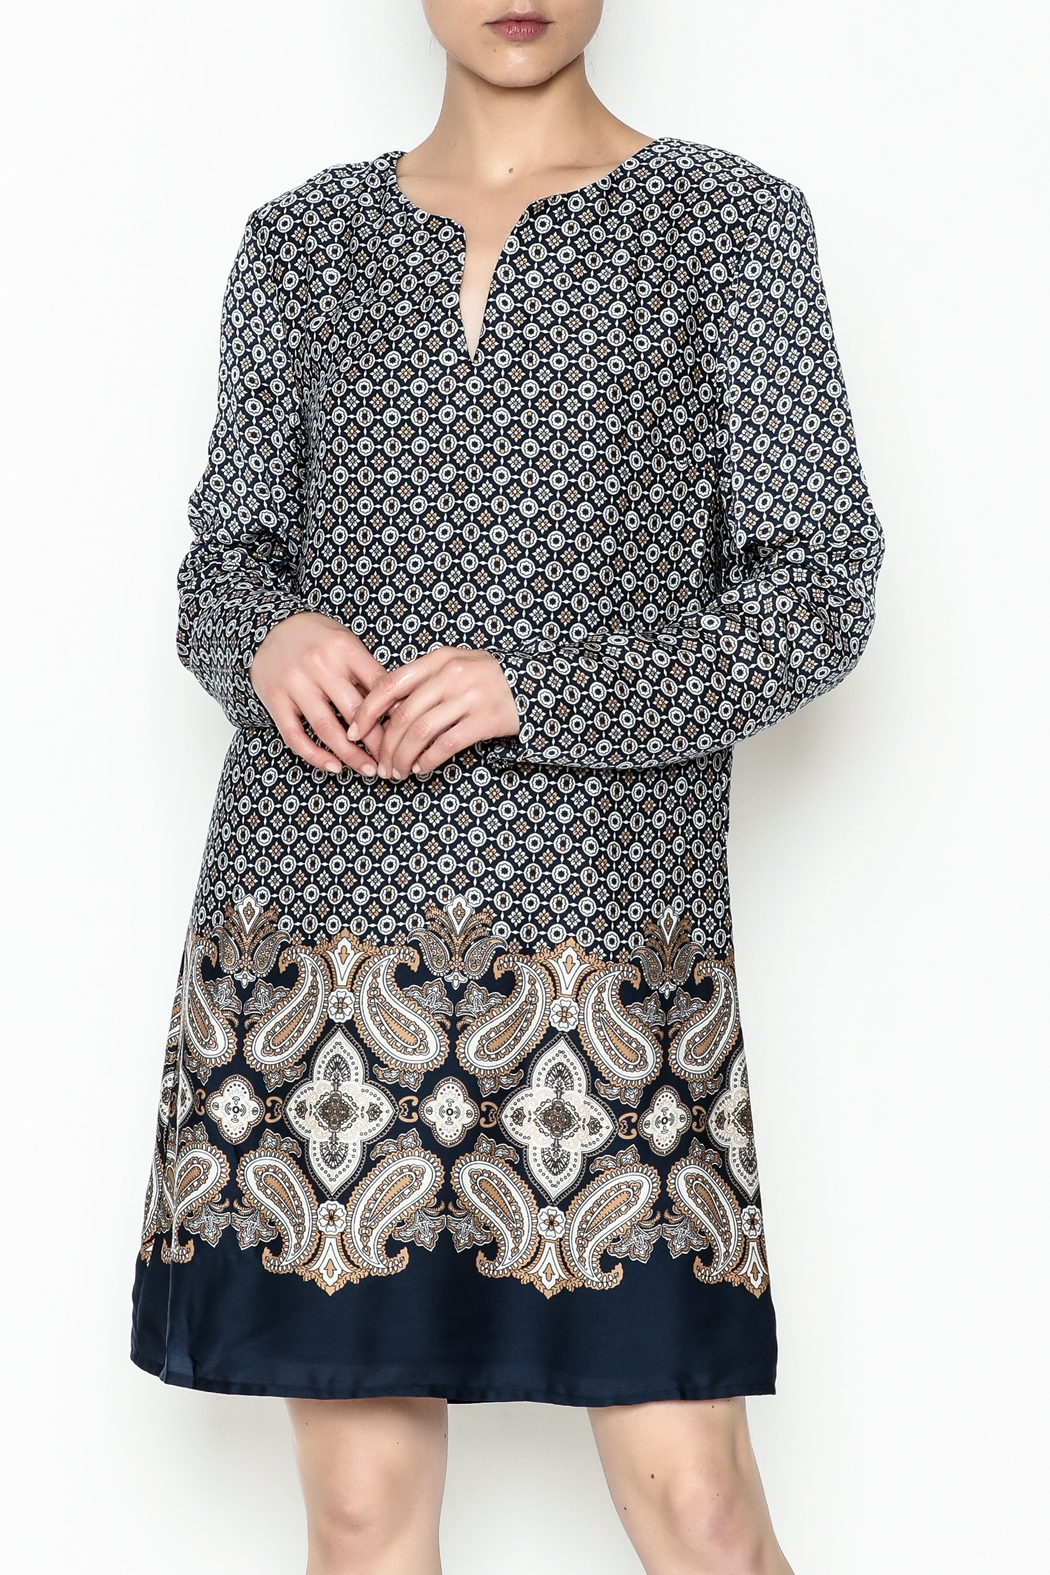 Charlie Paige Paisley Border Dress - Front Cropped Image